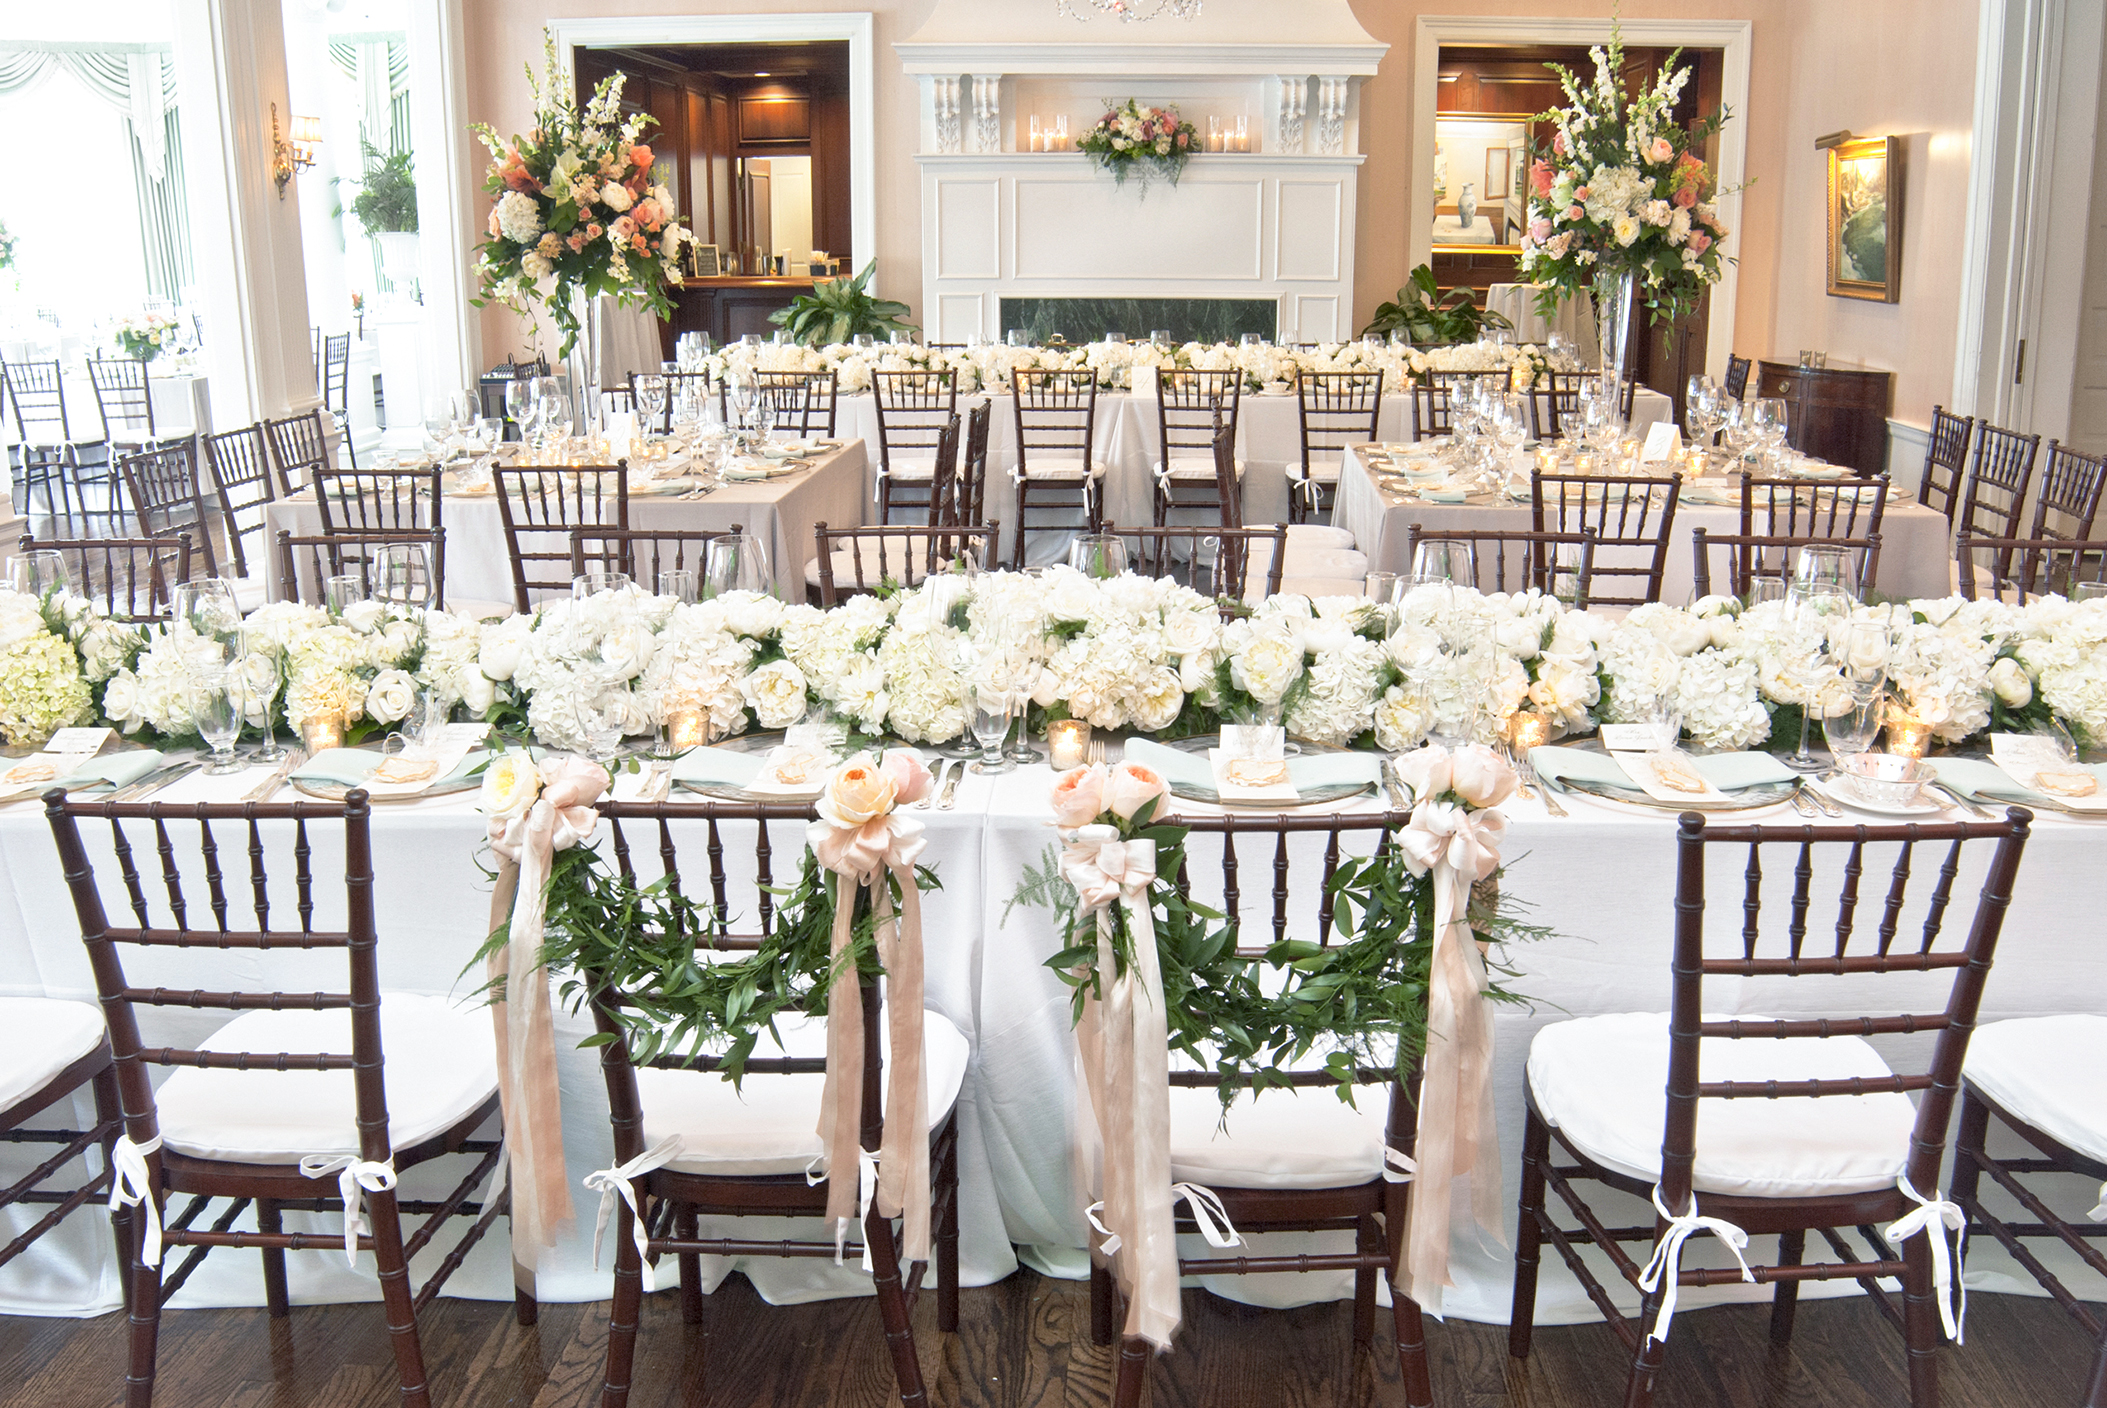 Wedding centerpieces as fresh flower runners for the head table at a club reception